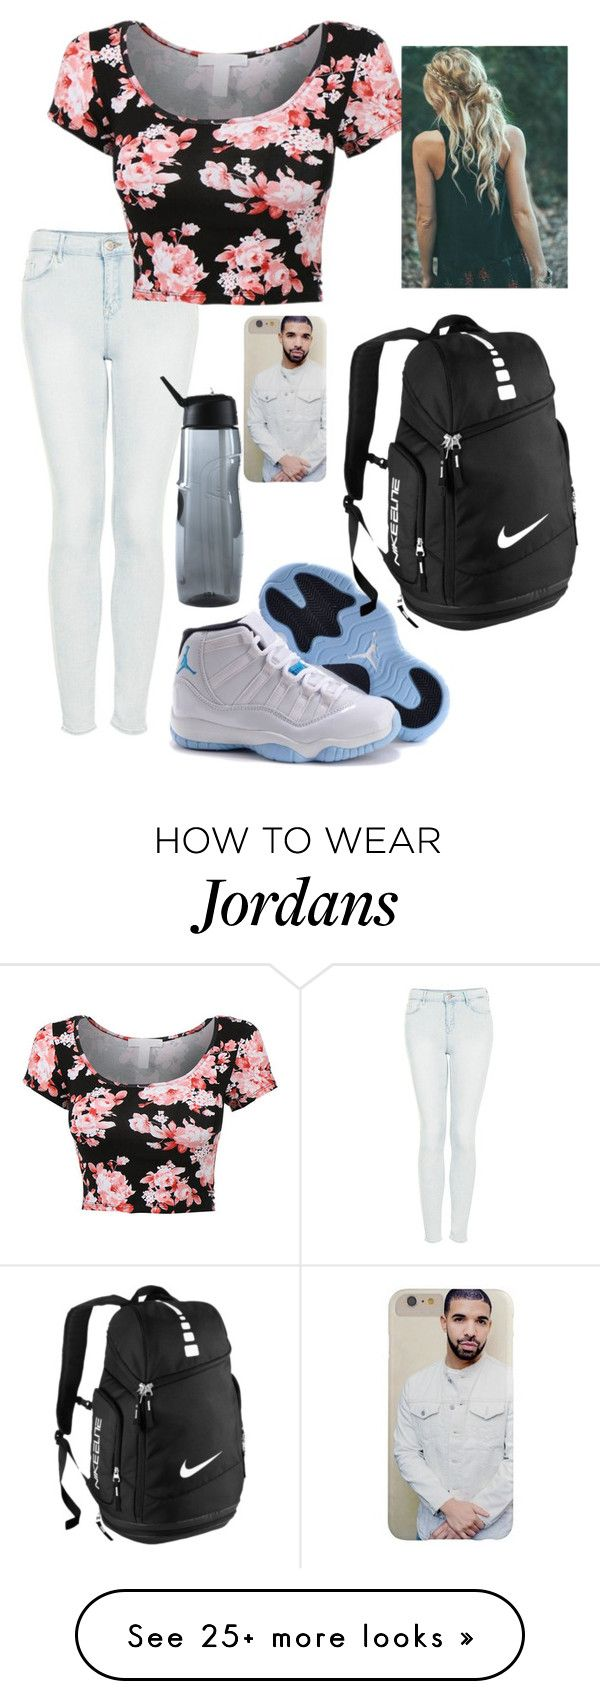 """""""OOTD 10/1/15"""" by kirstinv1226 on Polyvore featuring Topshop and NIKE"""